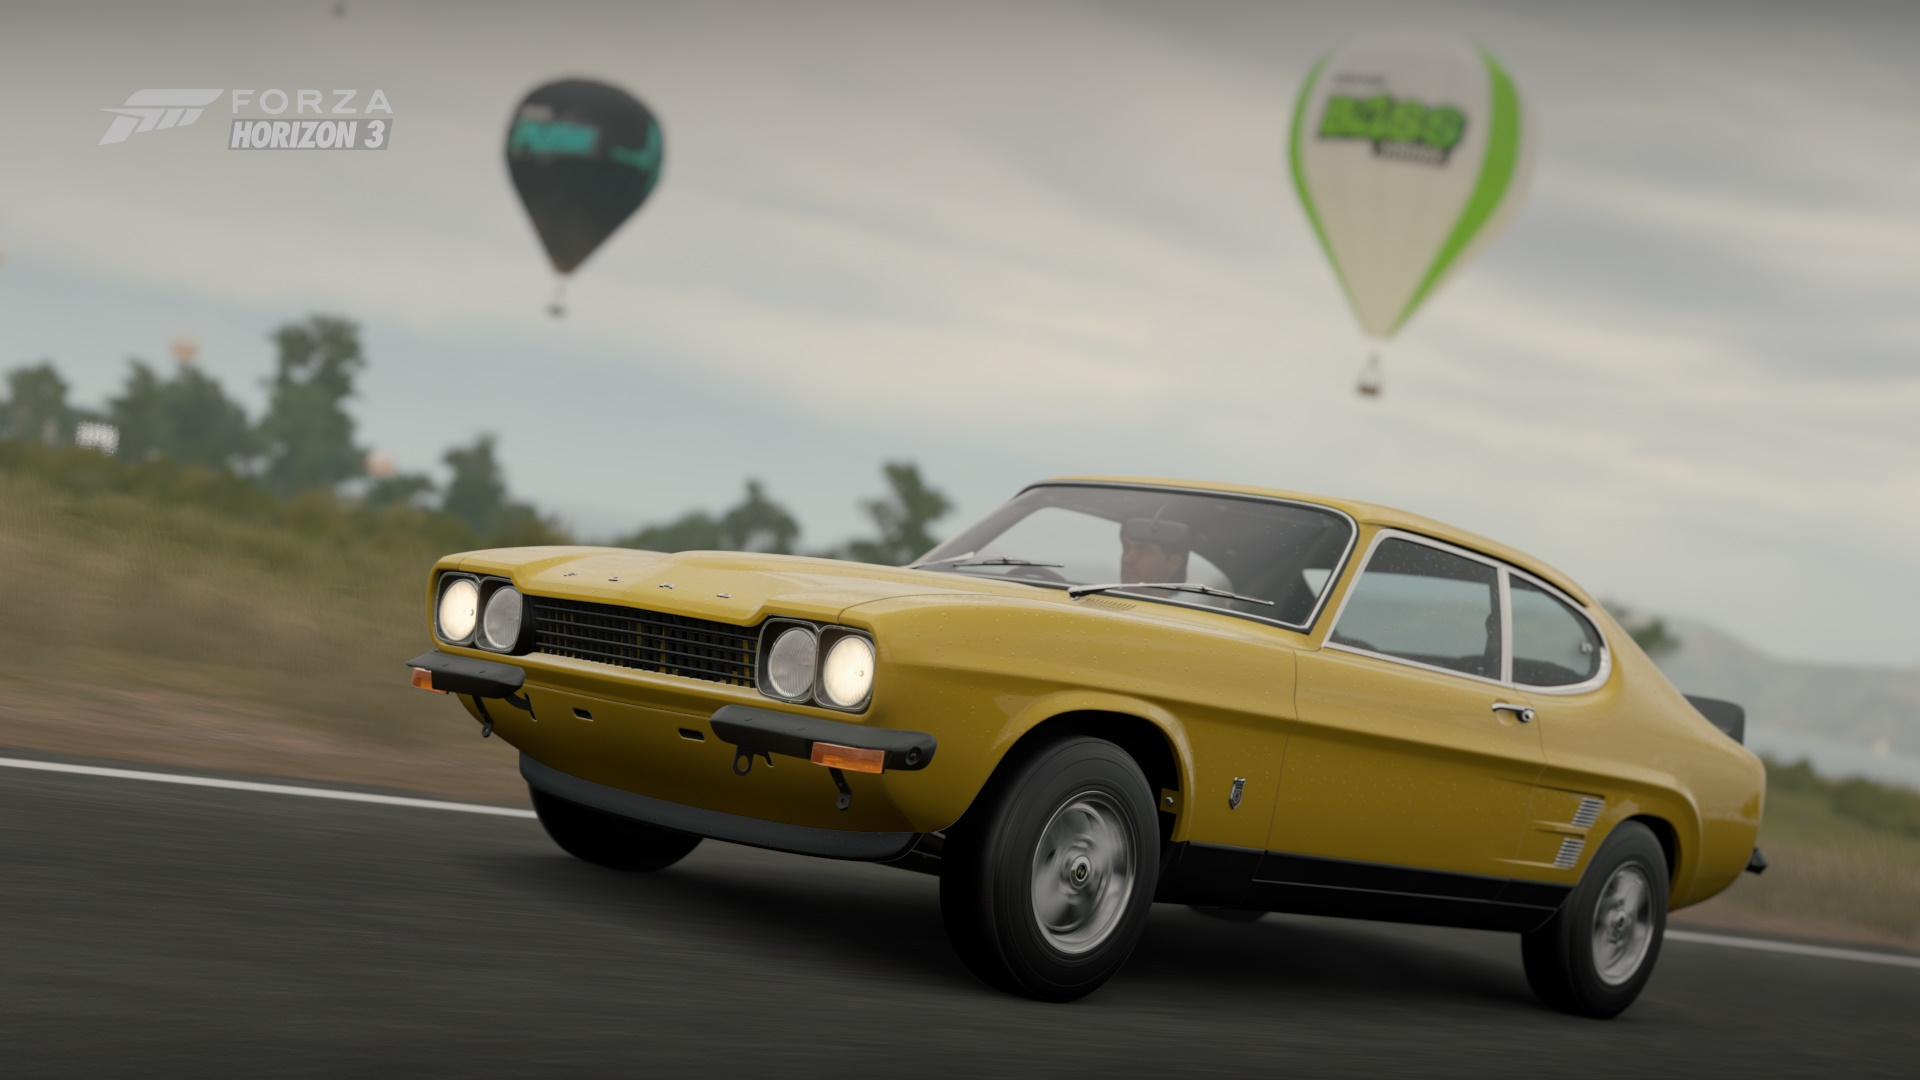 Forza Horizon 3 Cars Turn Signal Description And Operation 64 73 Mustang 1973 Ford Capri Rs3100 Photo By Receptor 17